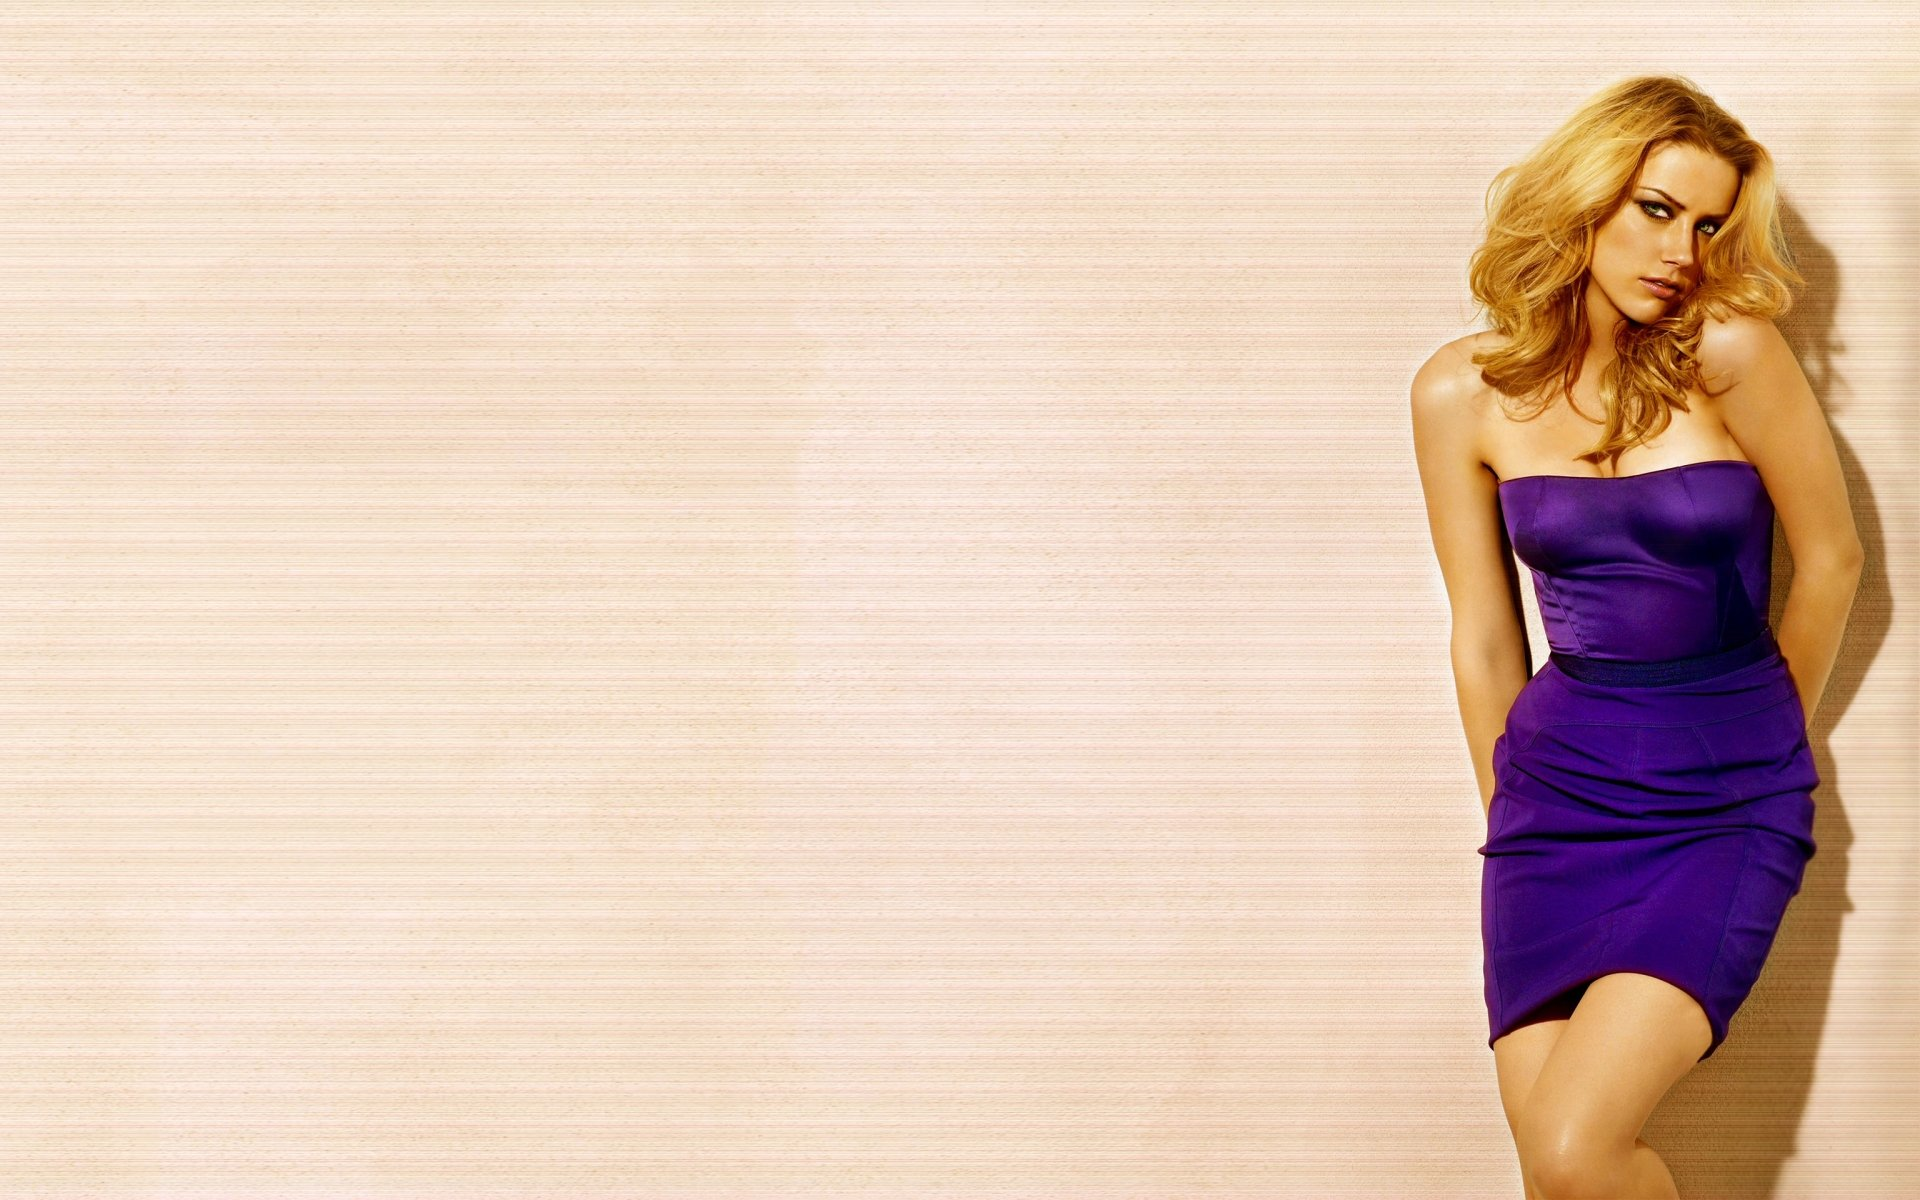 Celebrity - Amber Heard  Purple Blonde Wallpaper